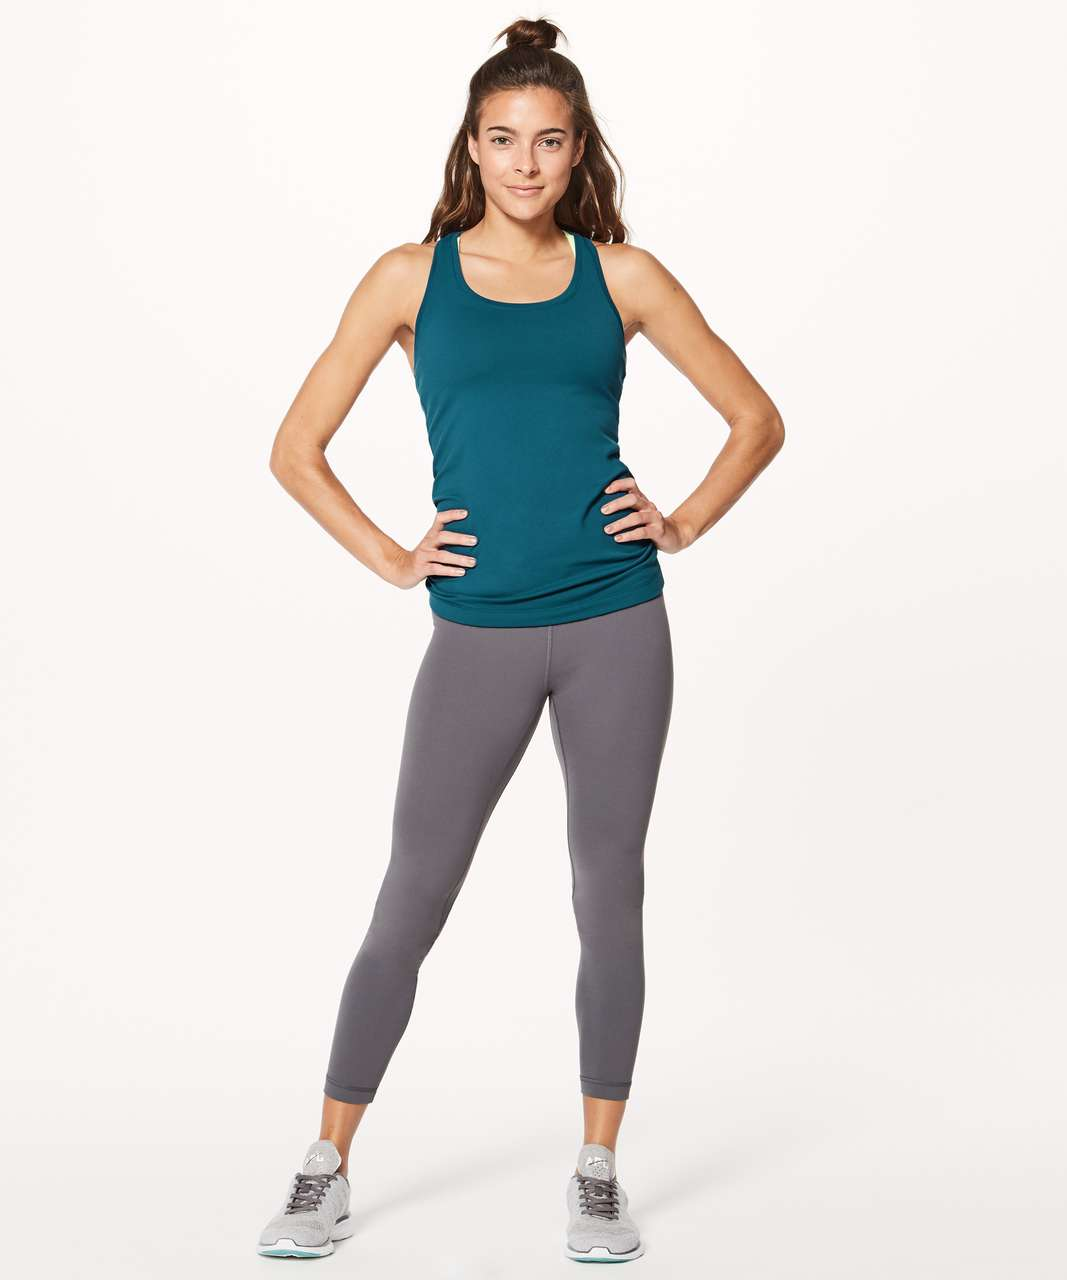 Lululemon Cool Racerback II - Nile Blue